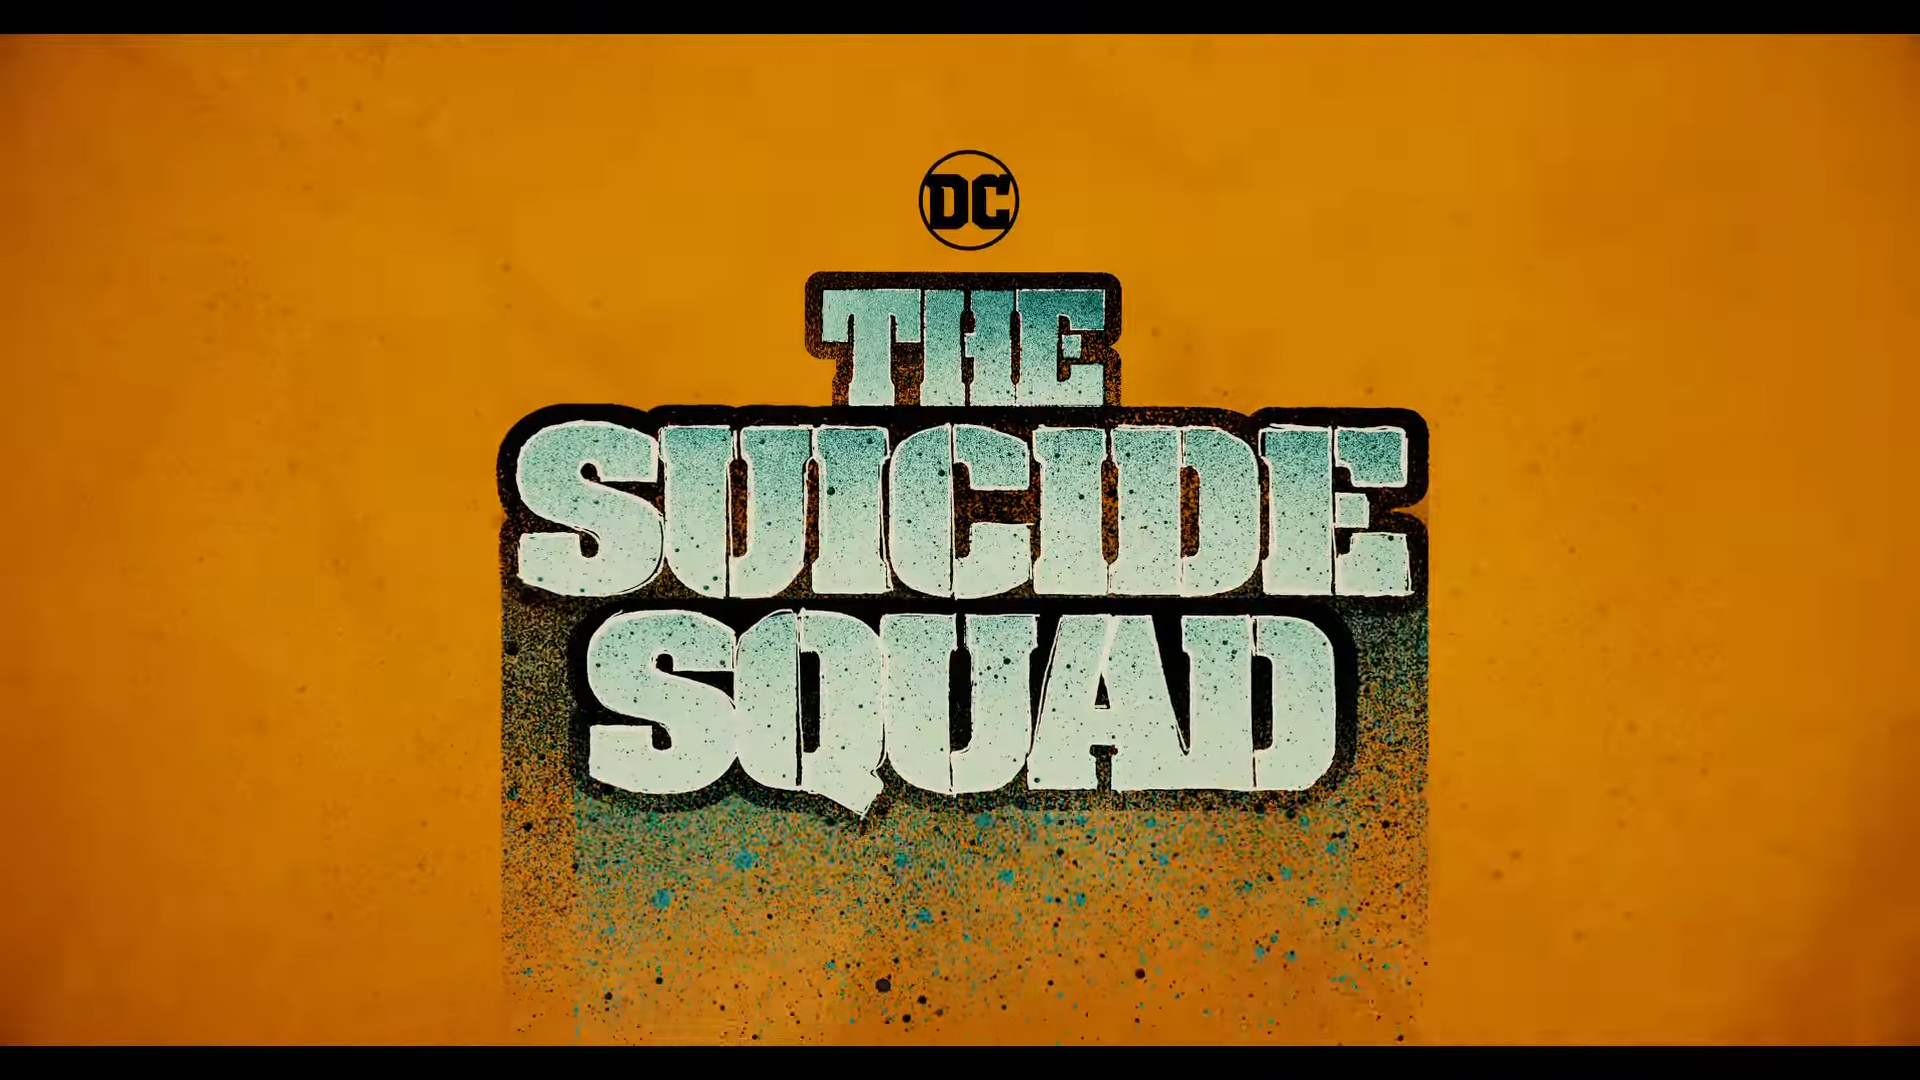 THE-SUICIDE-SQUAD-Rebellion-Trailer-2-19-screenshot-186